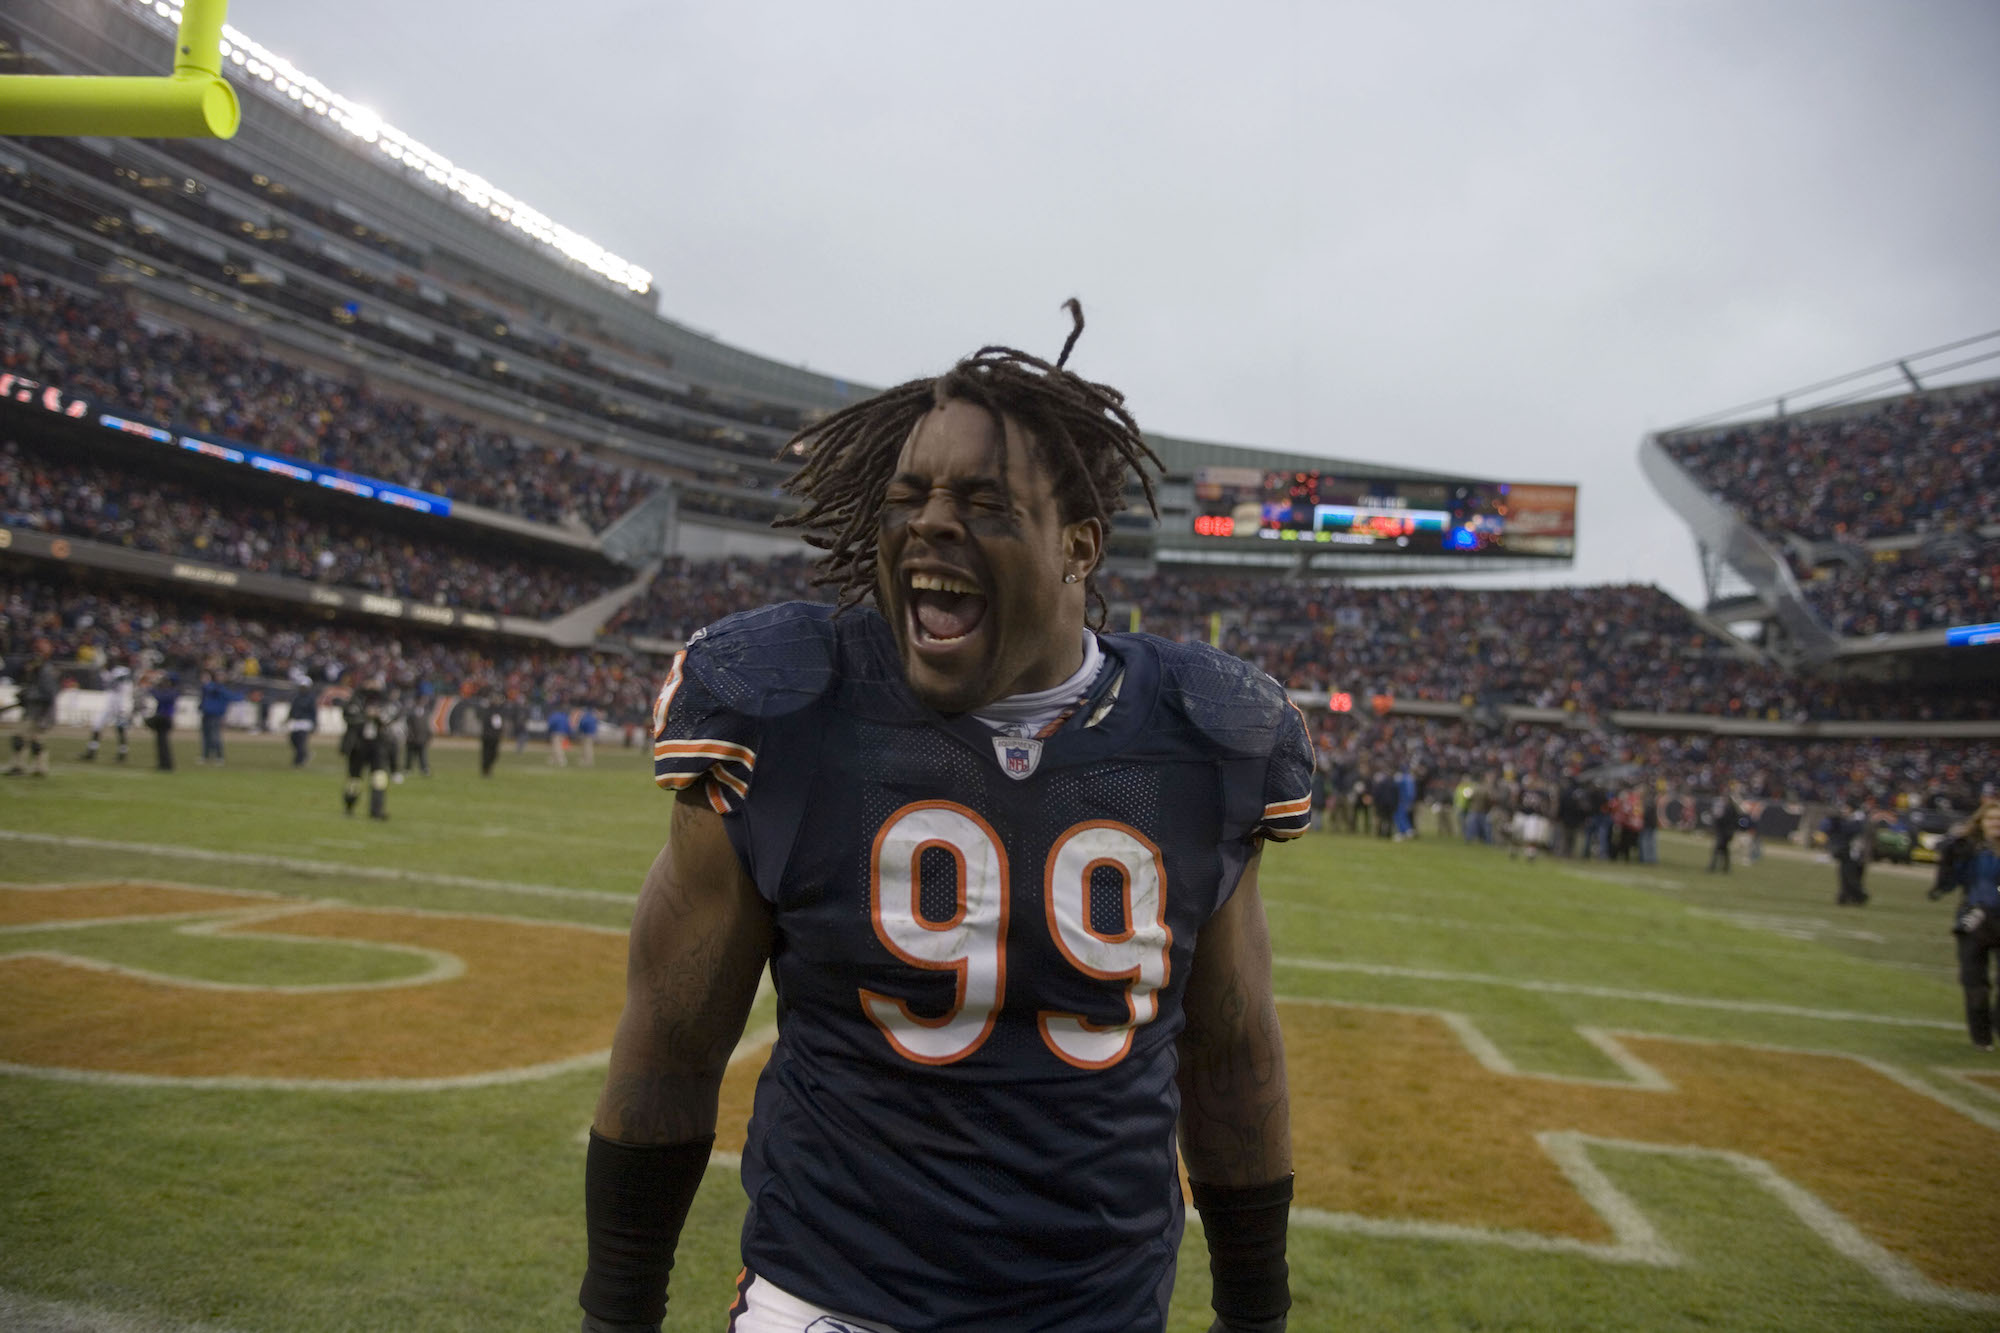 NFL player Tank Johnson of the Chicago Bears stands on Soldier Field on January 14, 2007, during an NFL playoff game against the Seattle Seahawks.